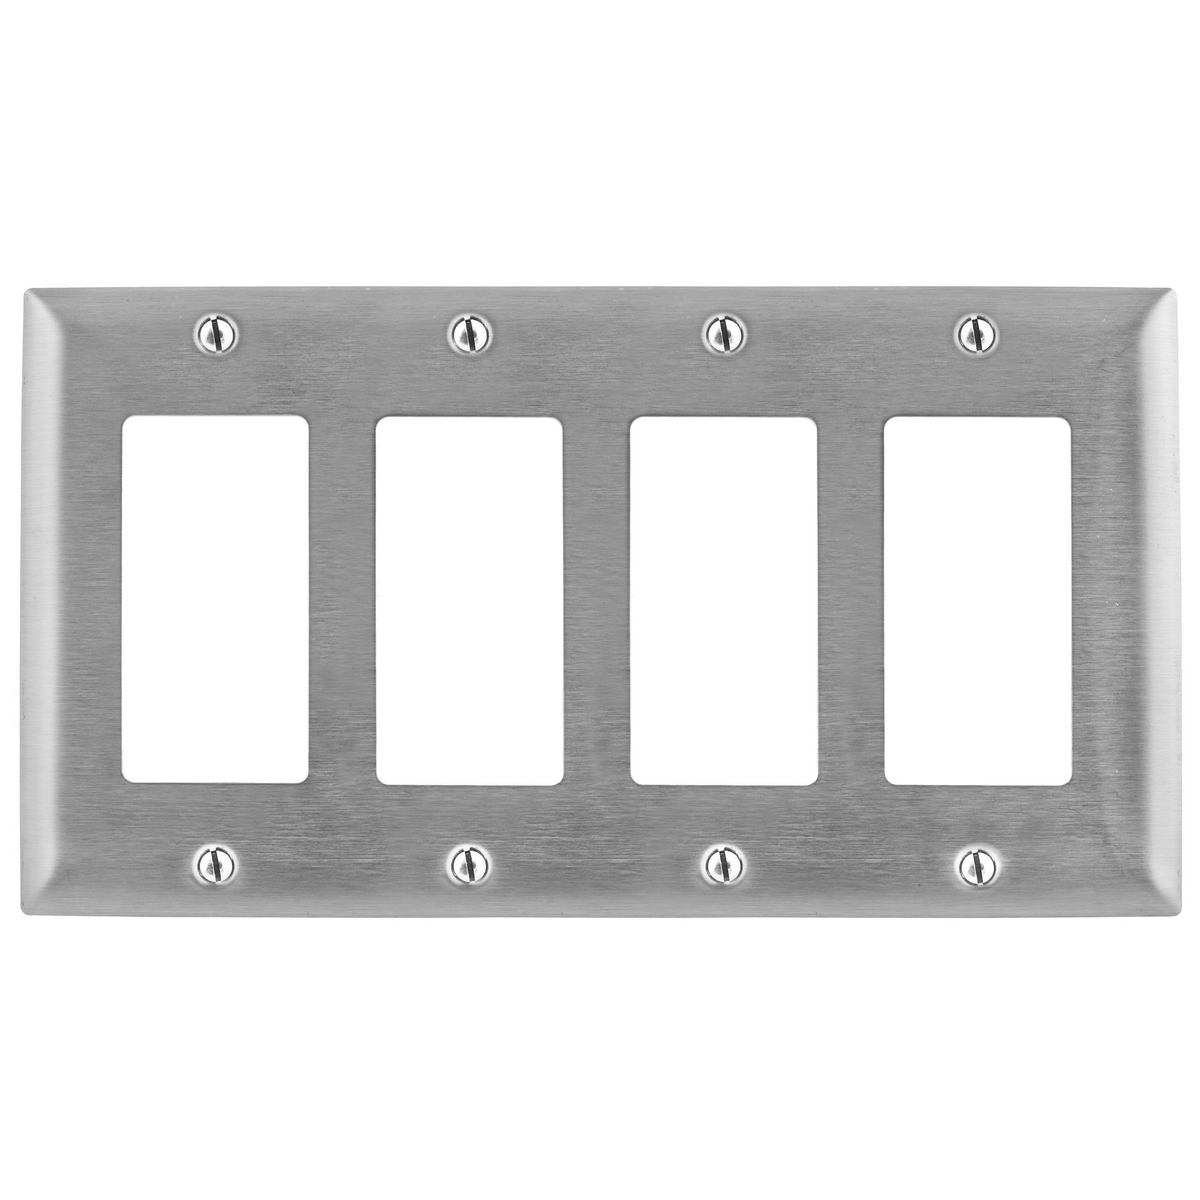 Hubbell SS264 4-Gang Stainless Steel 4-Decorator Switch Screw Mount Wallplate